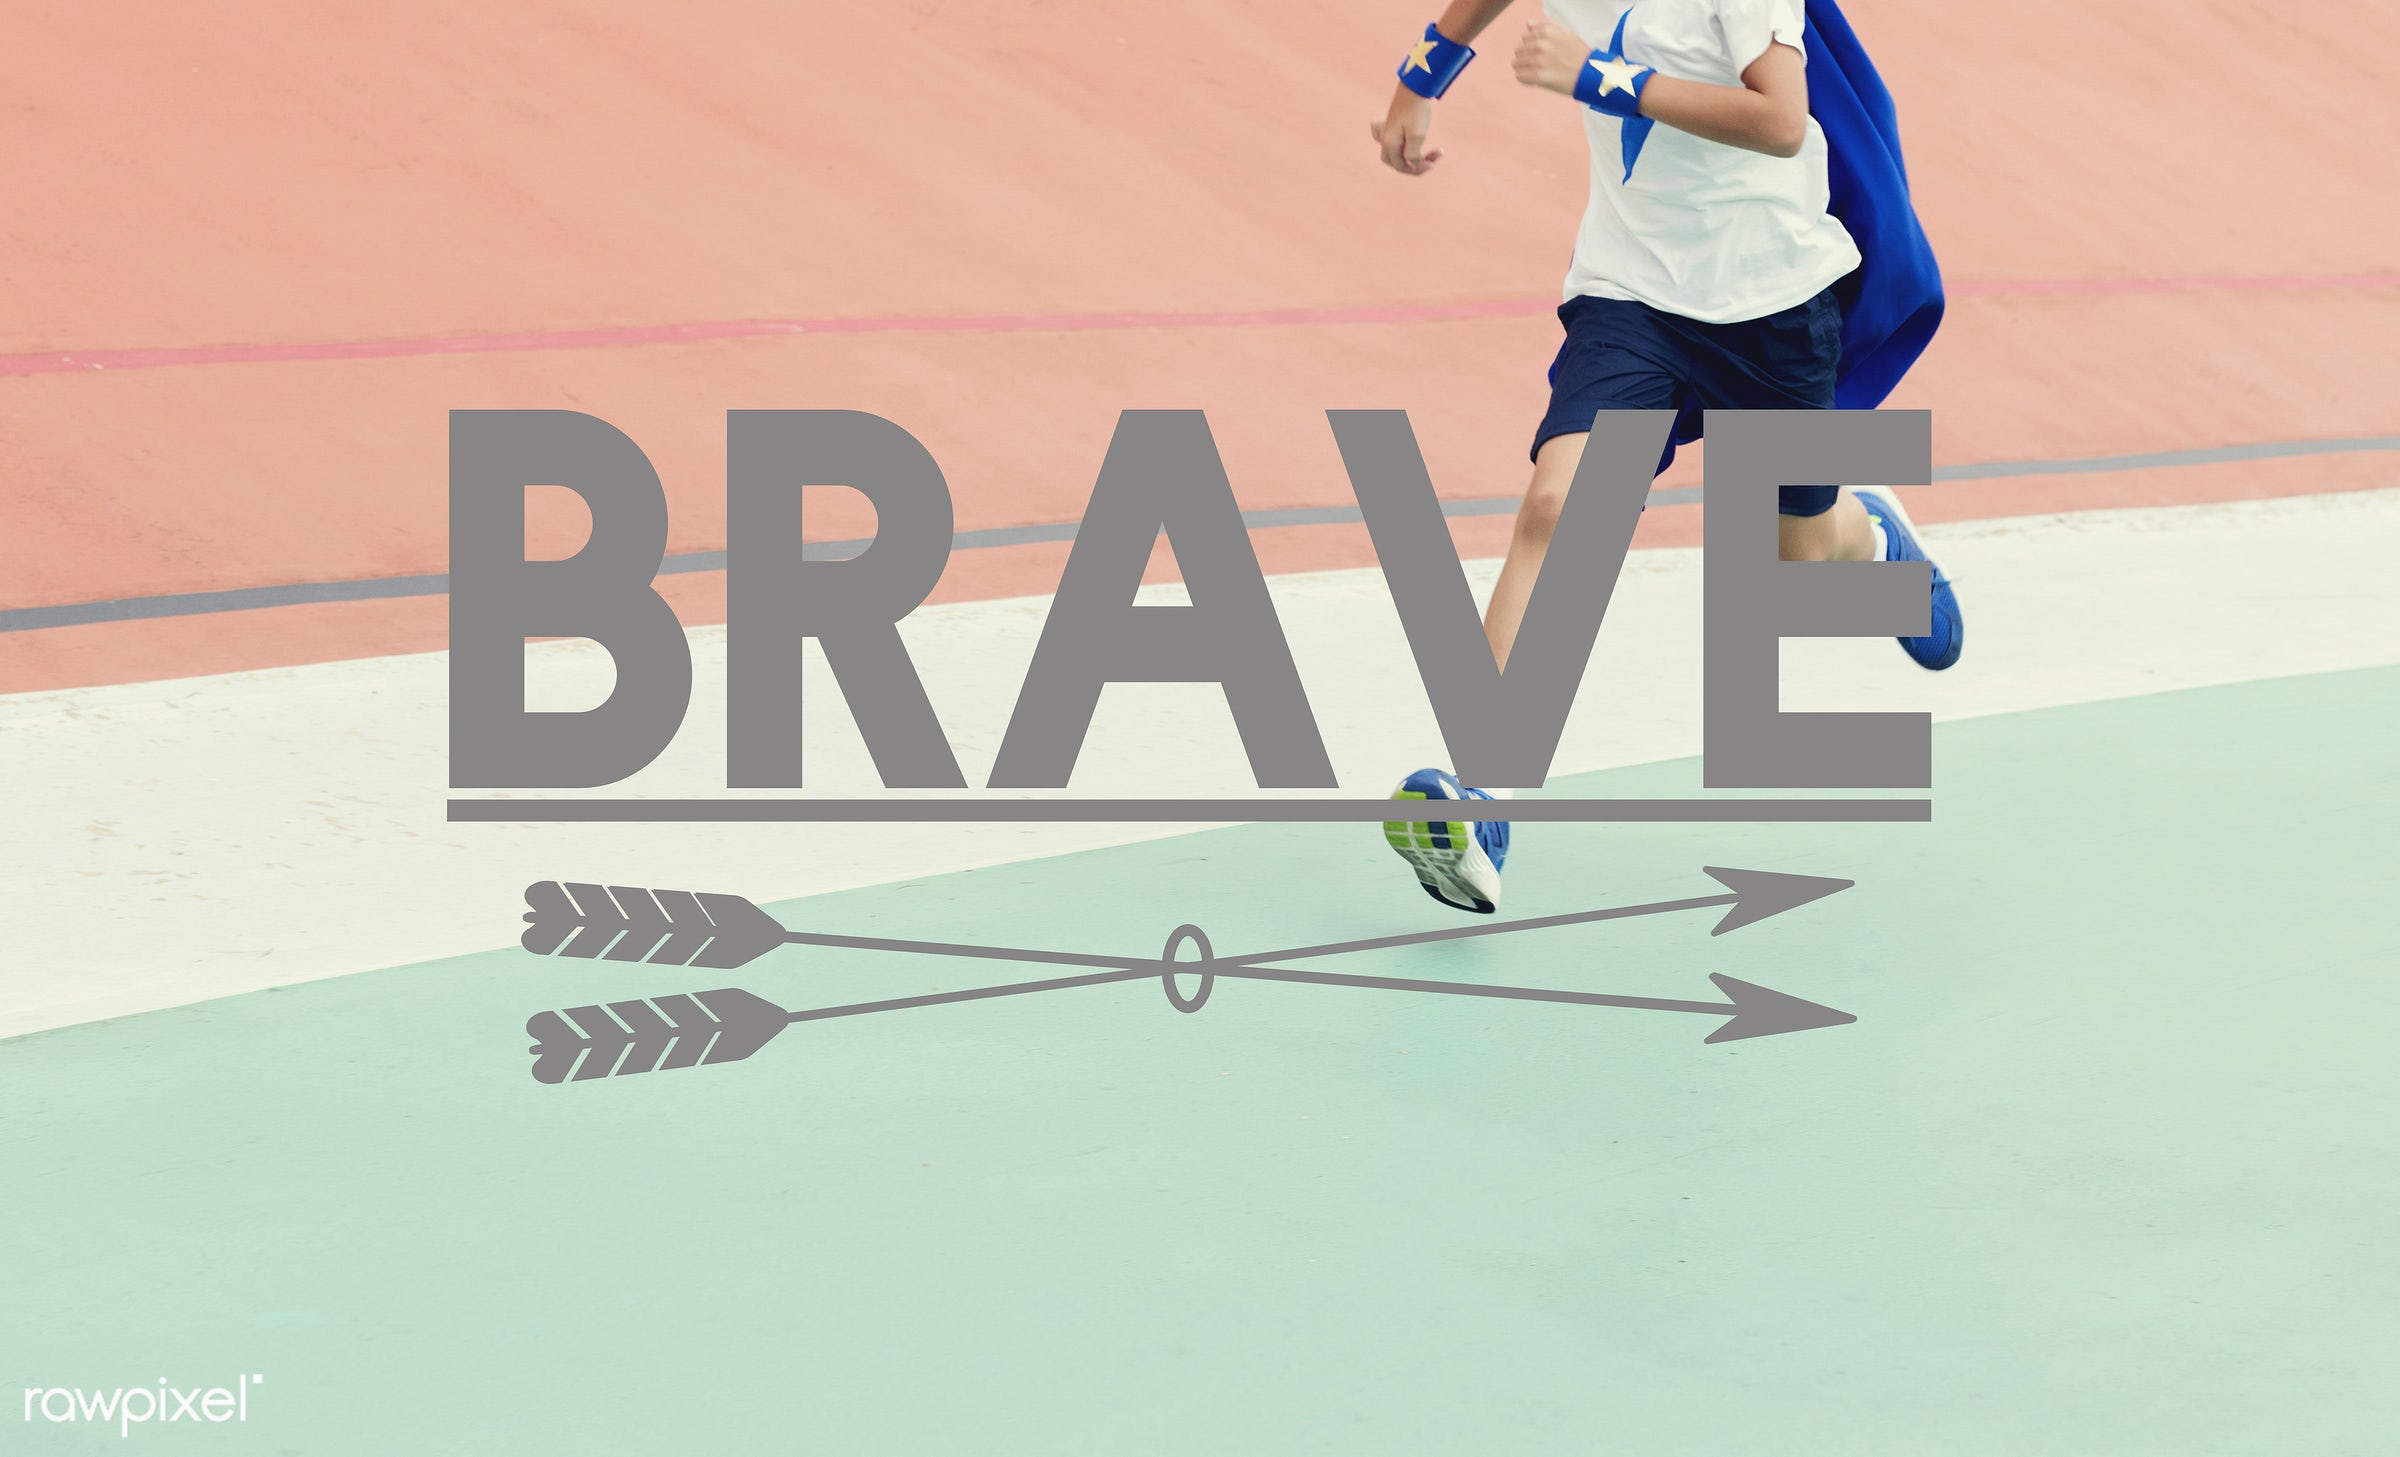 future, active, activity, arrows, boy, brand, brave, cheerful, child, childhood, costume, elementary age, empowerment,...